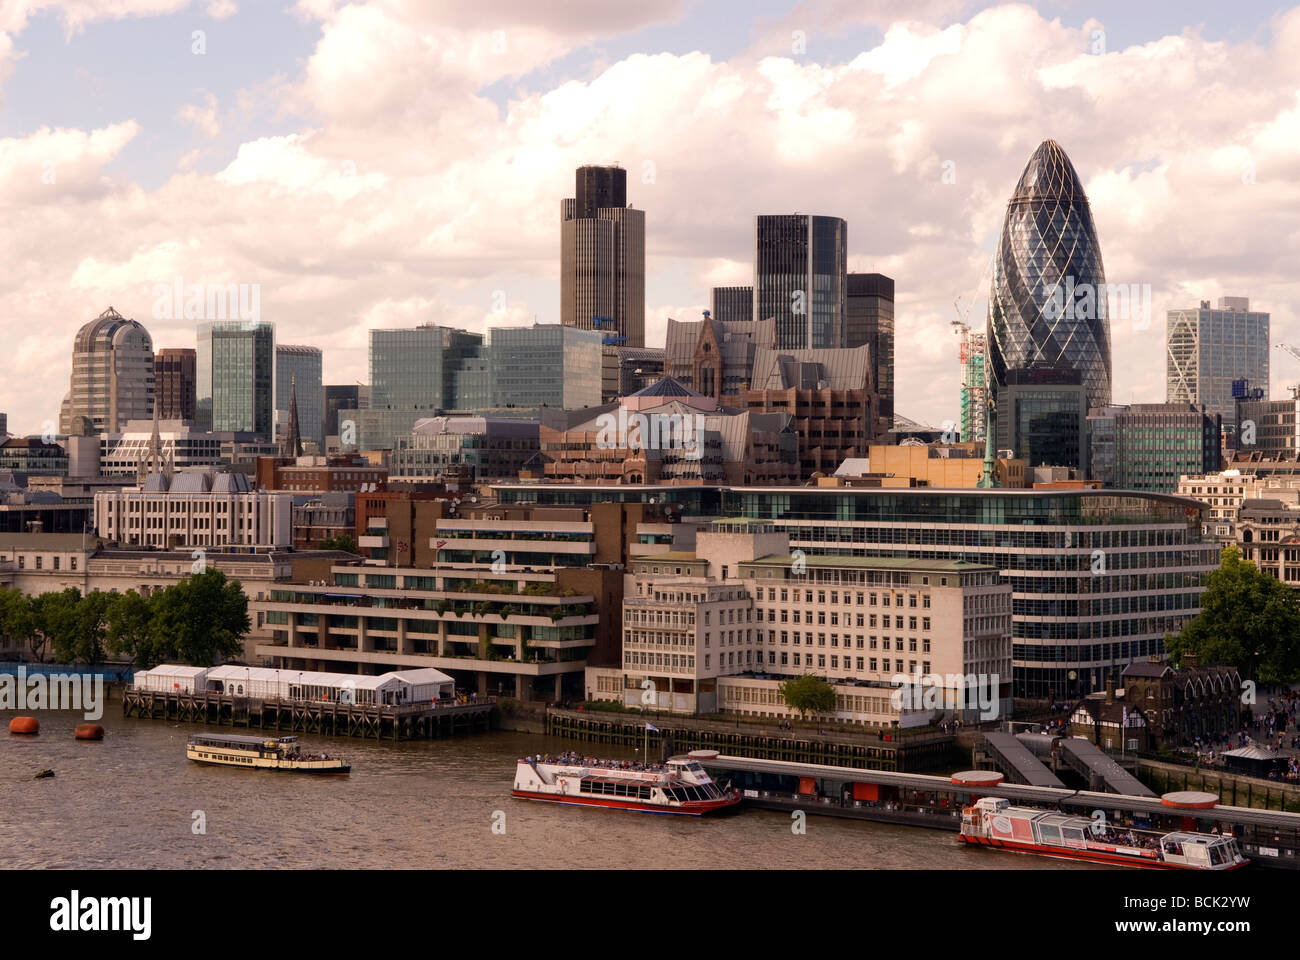 City of London showing a range of business and financial institutions including the famous Gherkin building, London, - Stock Image